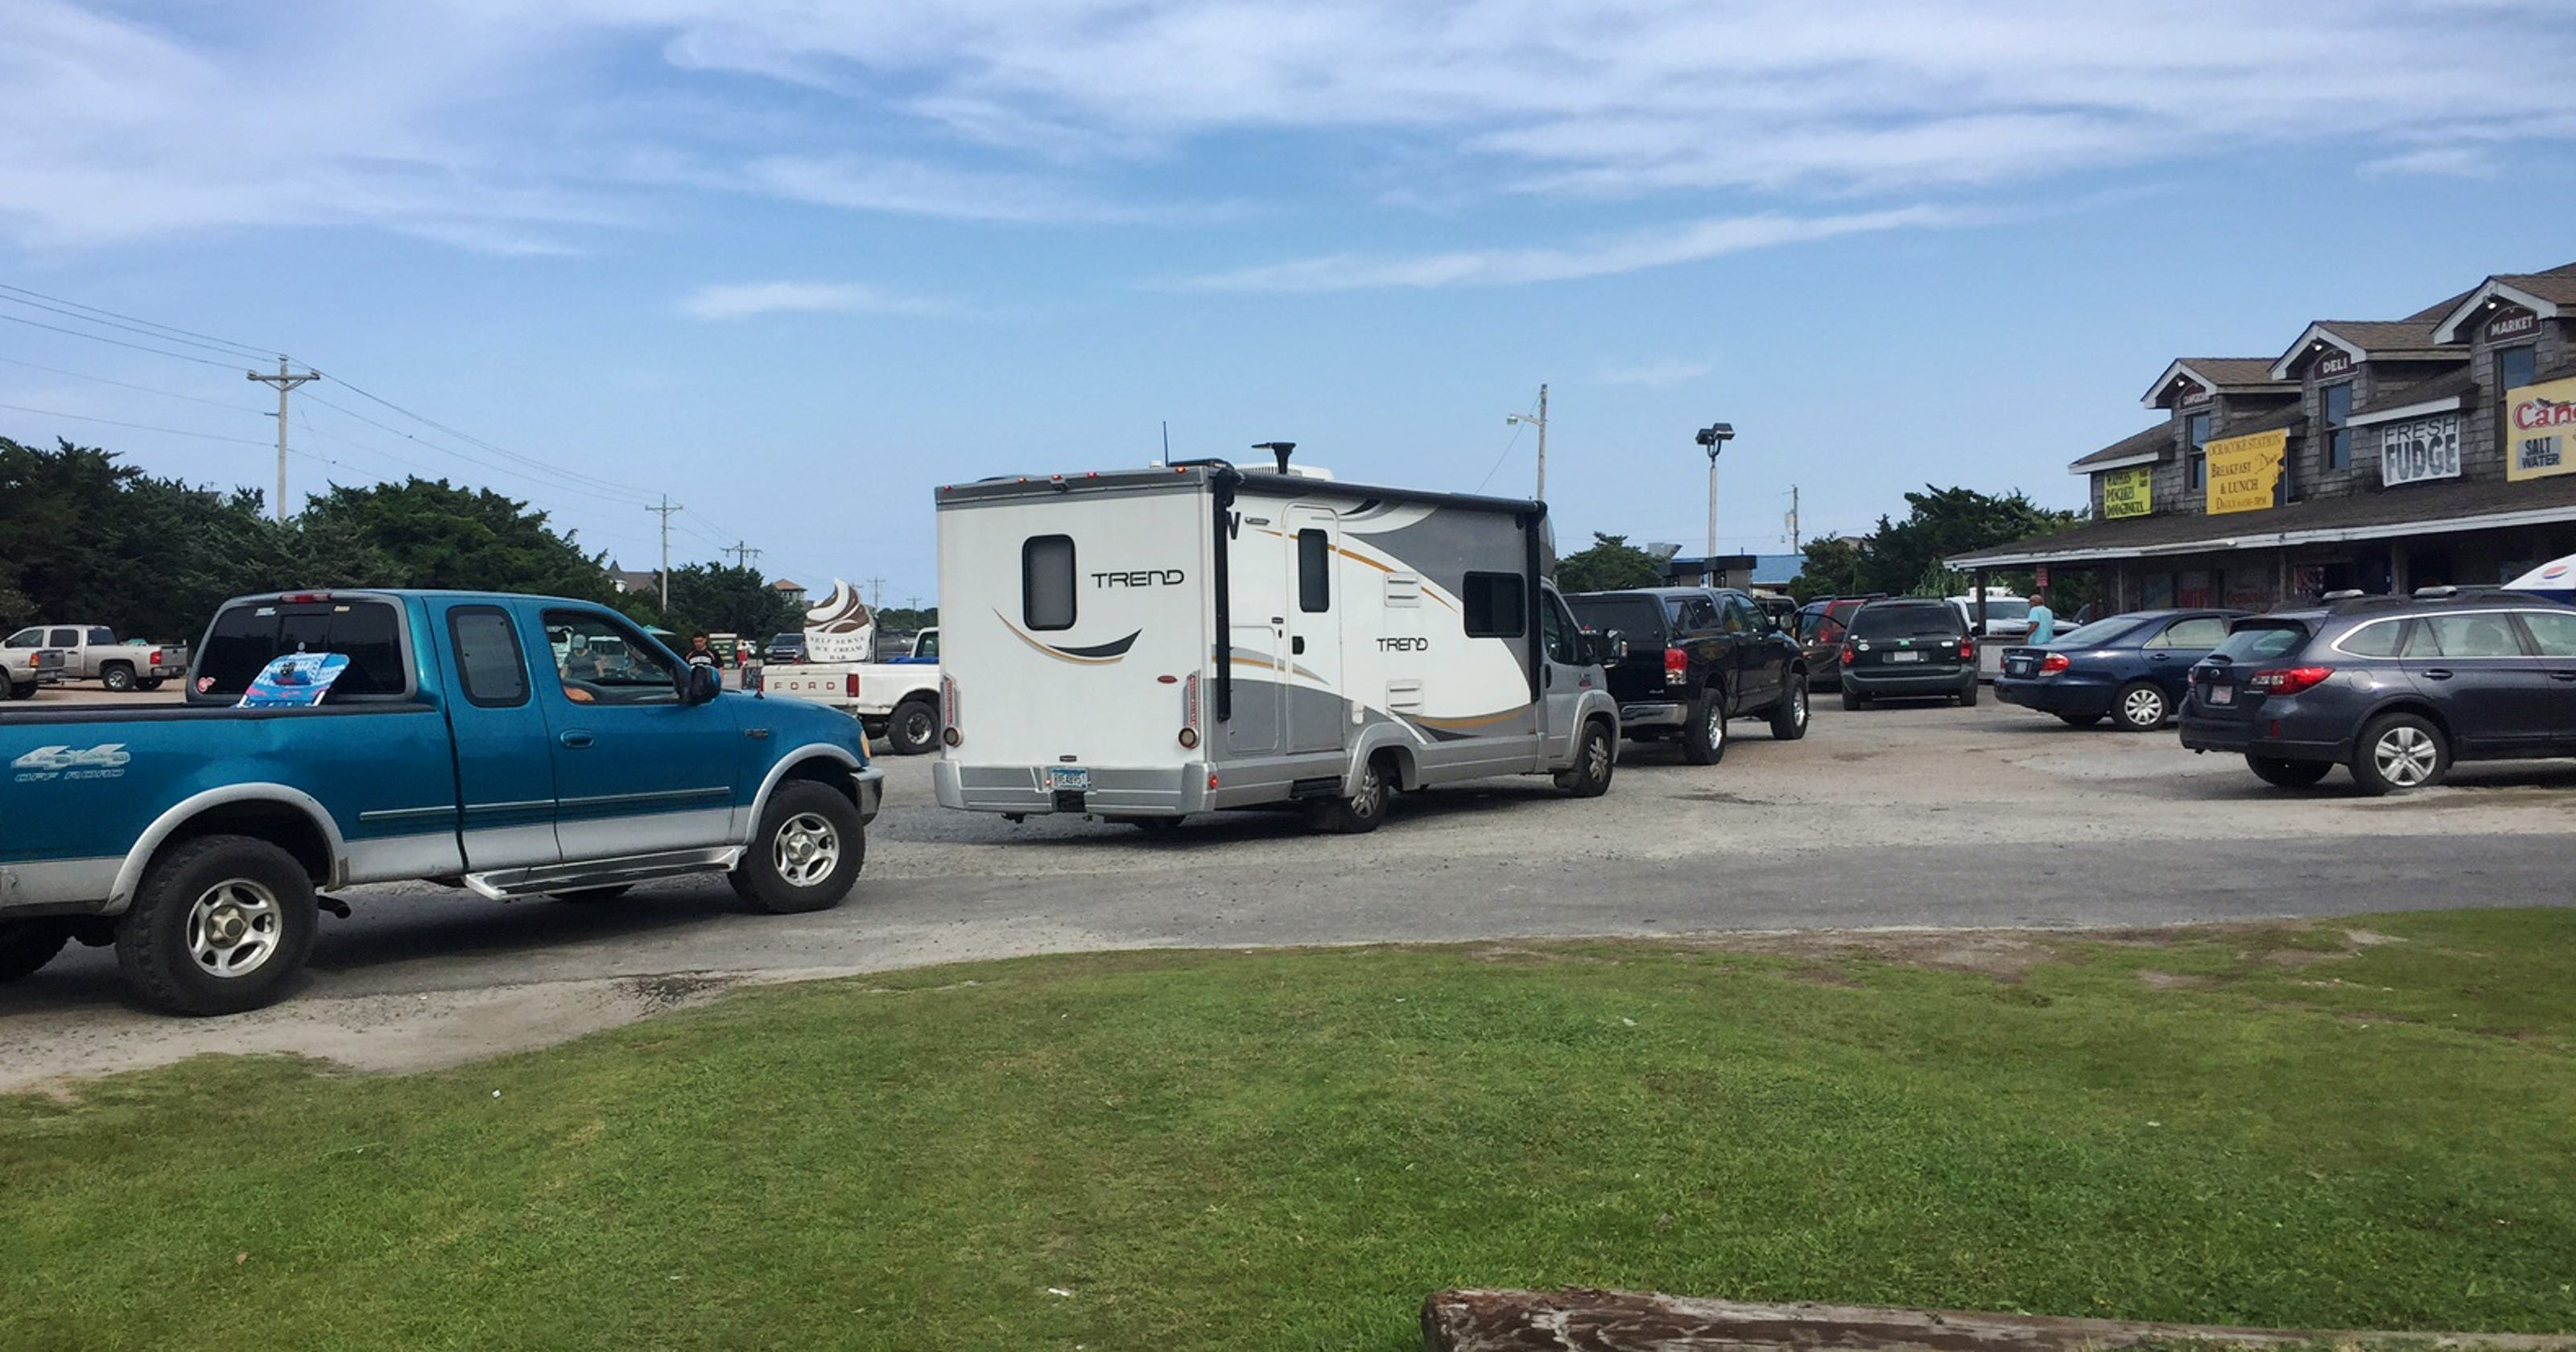 Ocracoke, Hatteras islands in North Carolina could be in